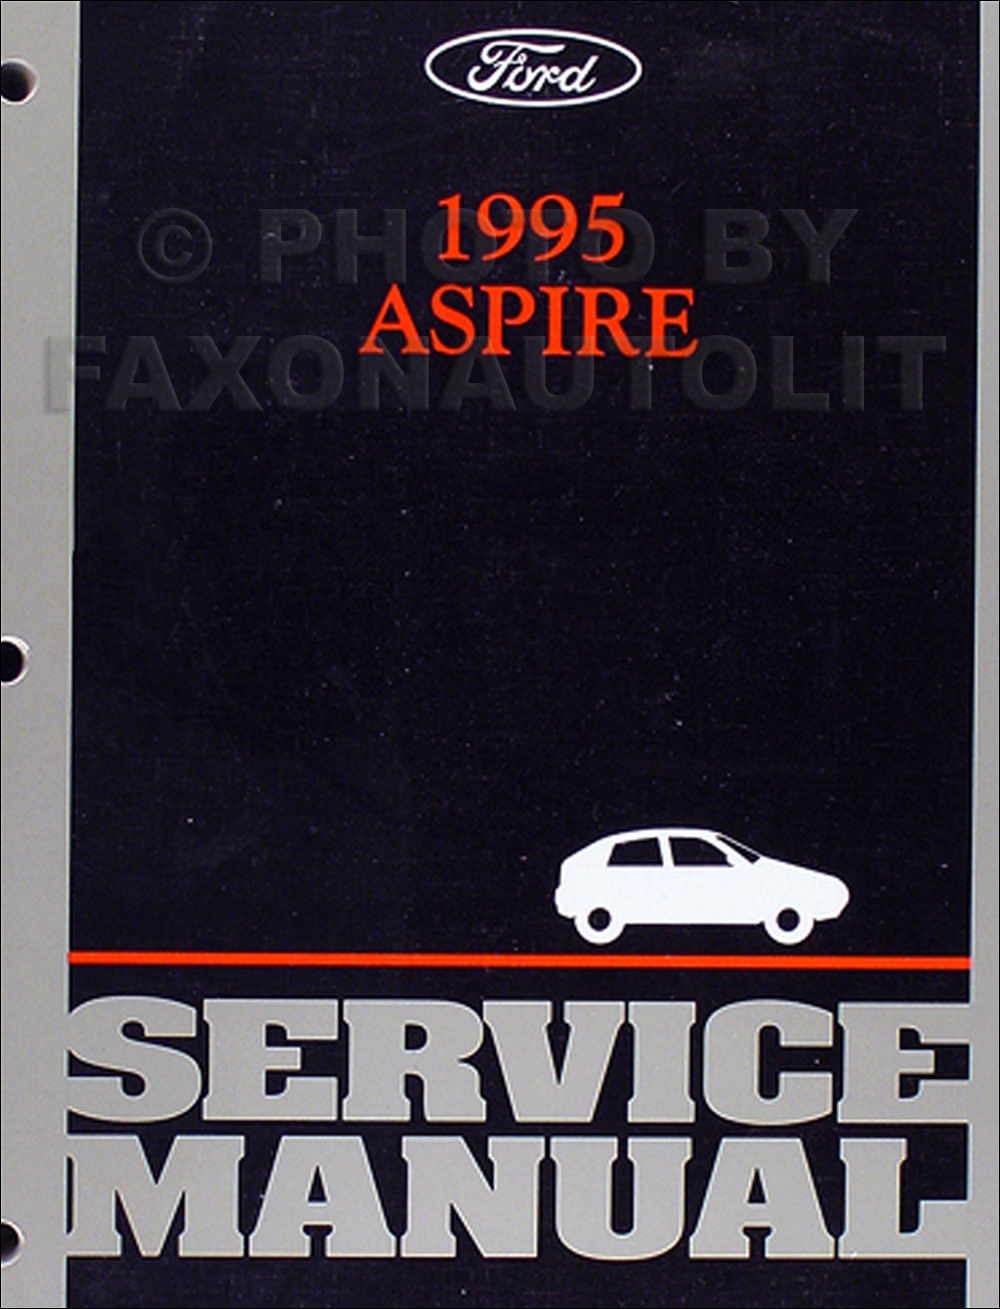 1995 Ford Aspire Electrical And Vacuum Troubleshooting Manual Original Wiring Diagram Repair Shop